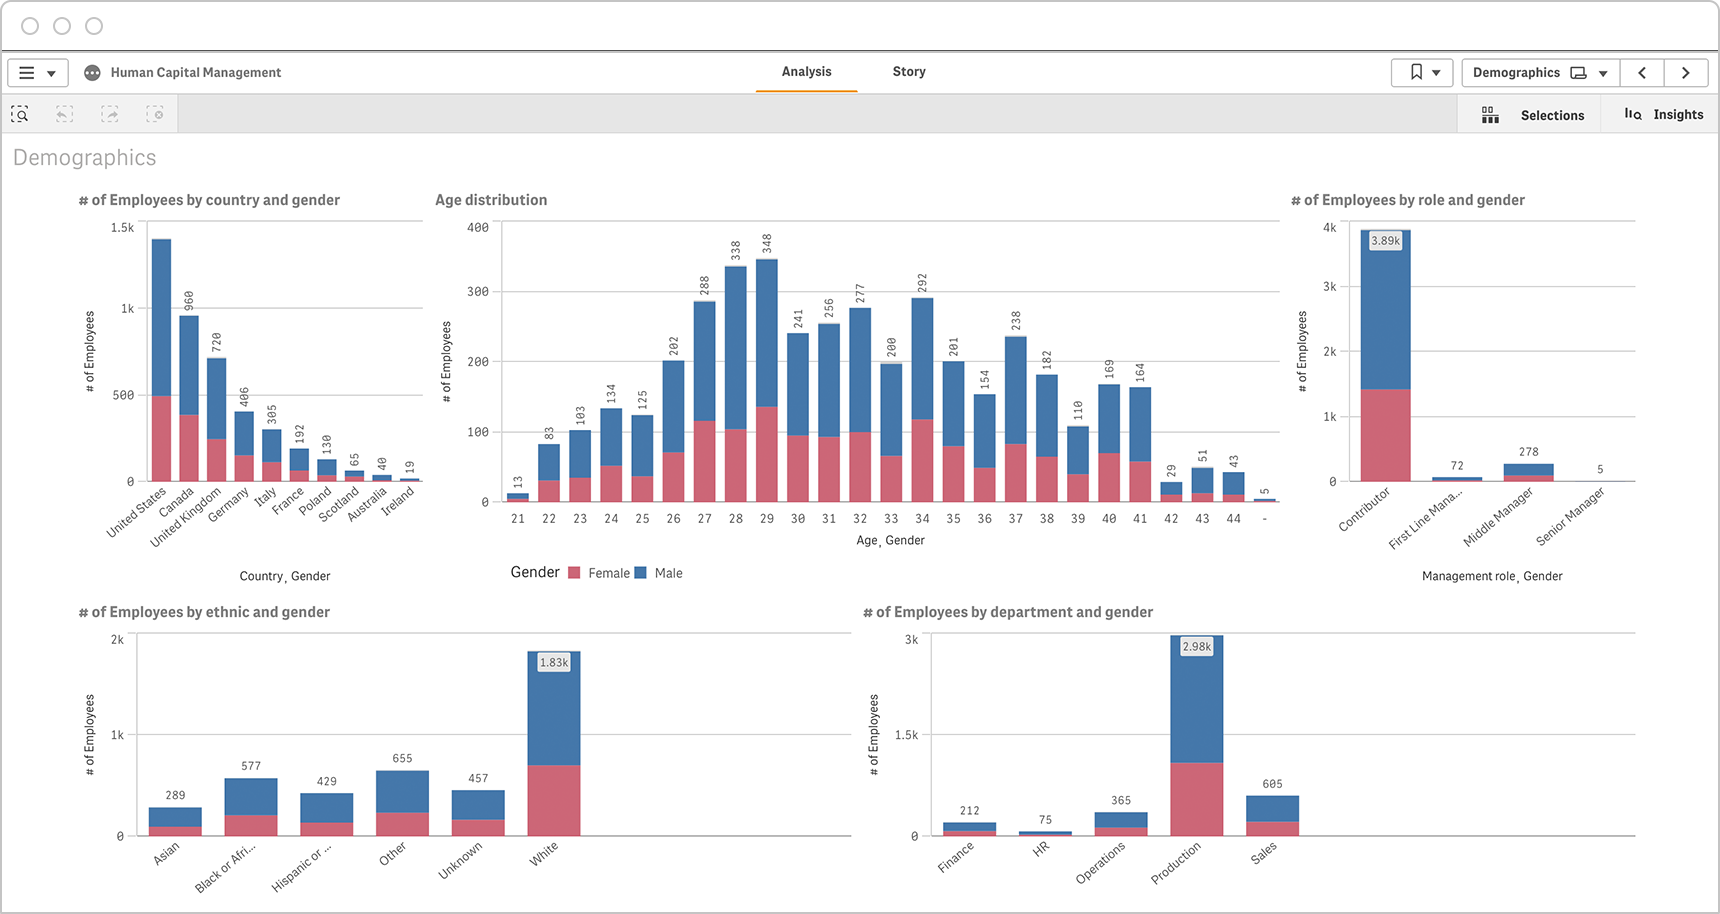 An workforce demographics HR dashboard allows the user to analyze data on age, gender, location, department and ethnic groups.